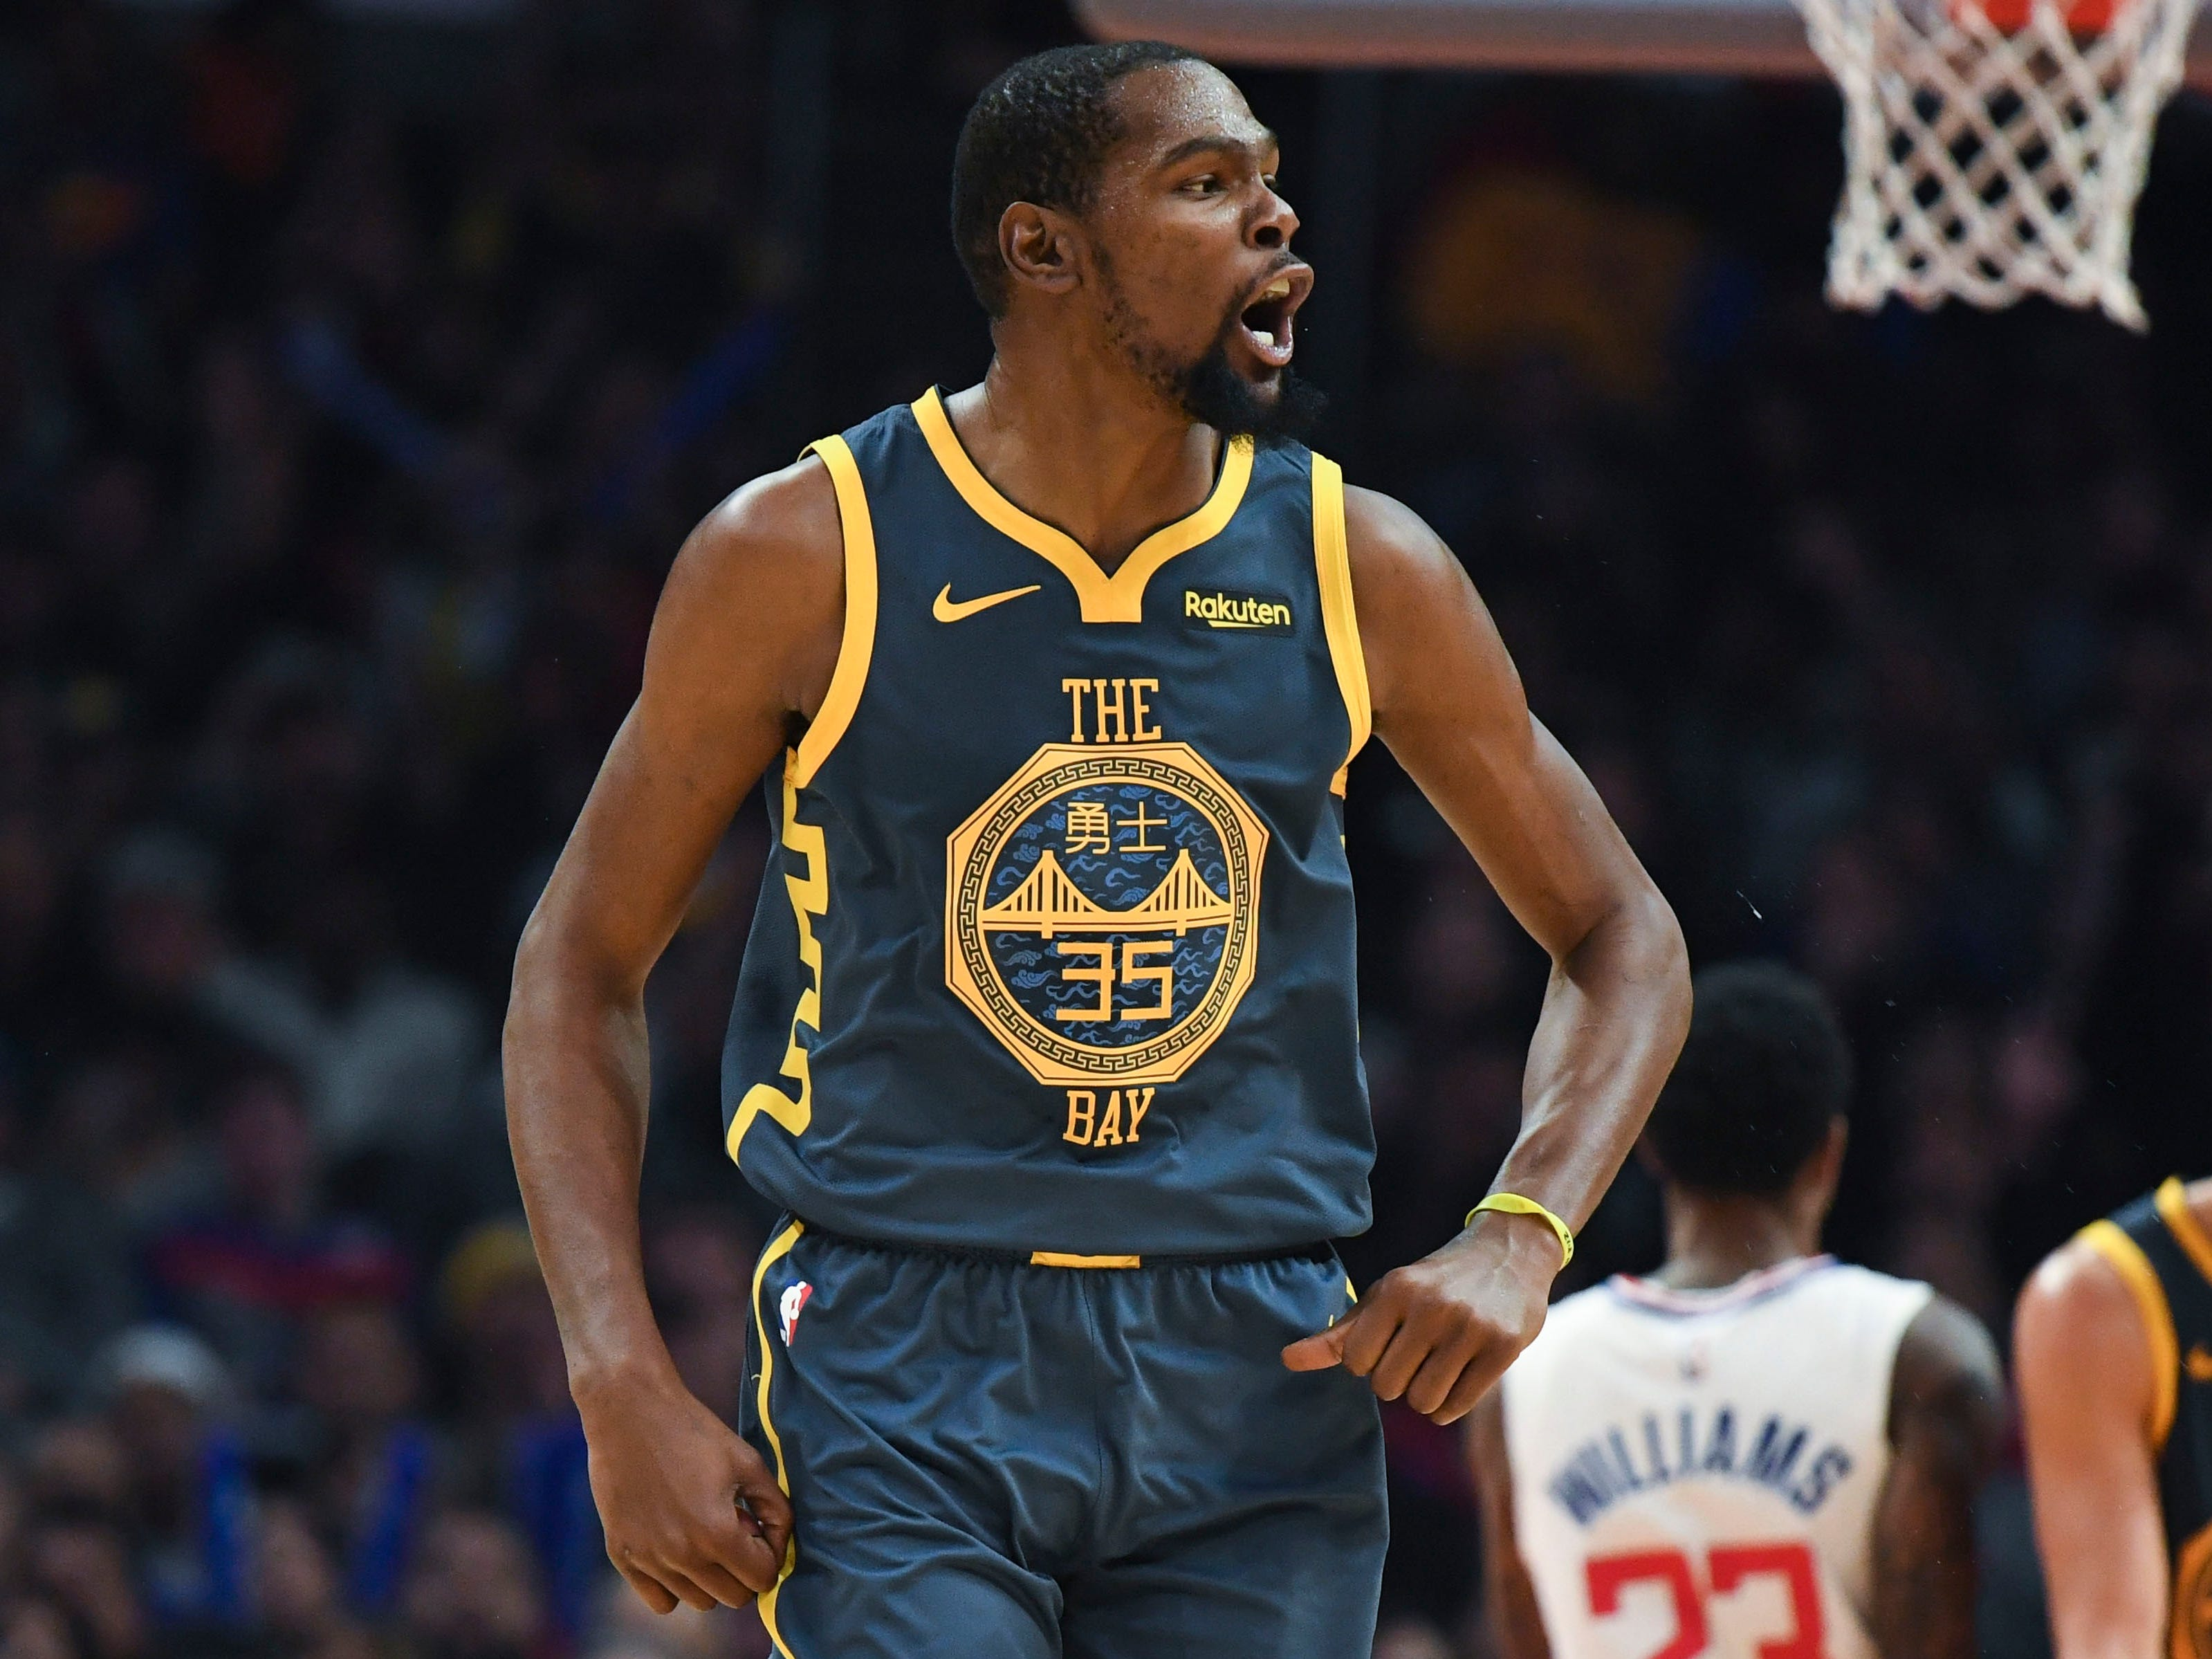 10. Kevin Durant, Warriors (Nov. 12): 33 points, 11 rebounds, 10 assists in 121-116 overtime loss to Clippers.